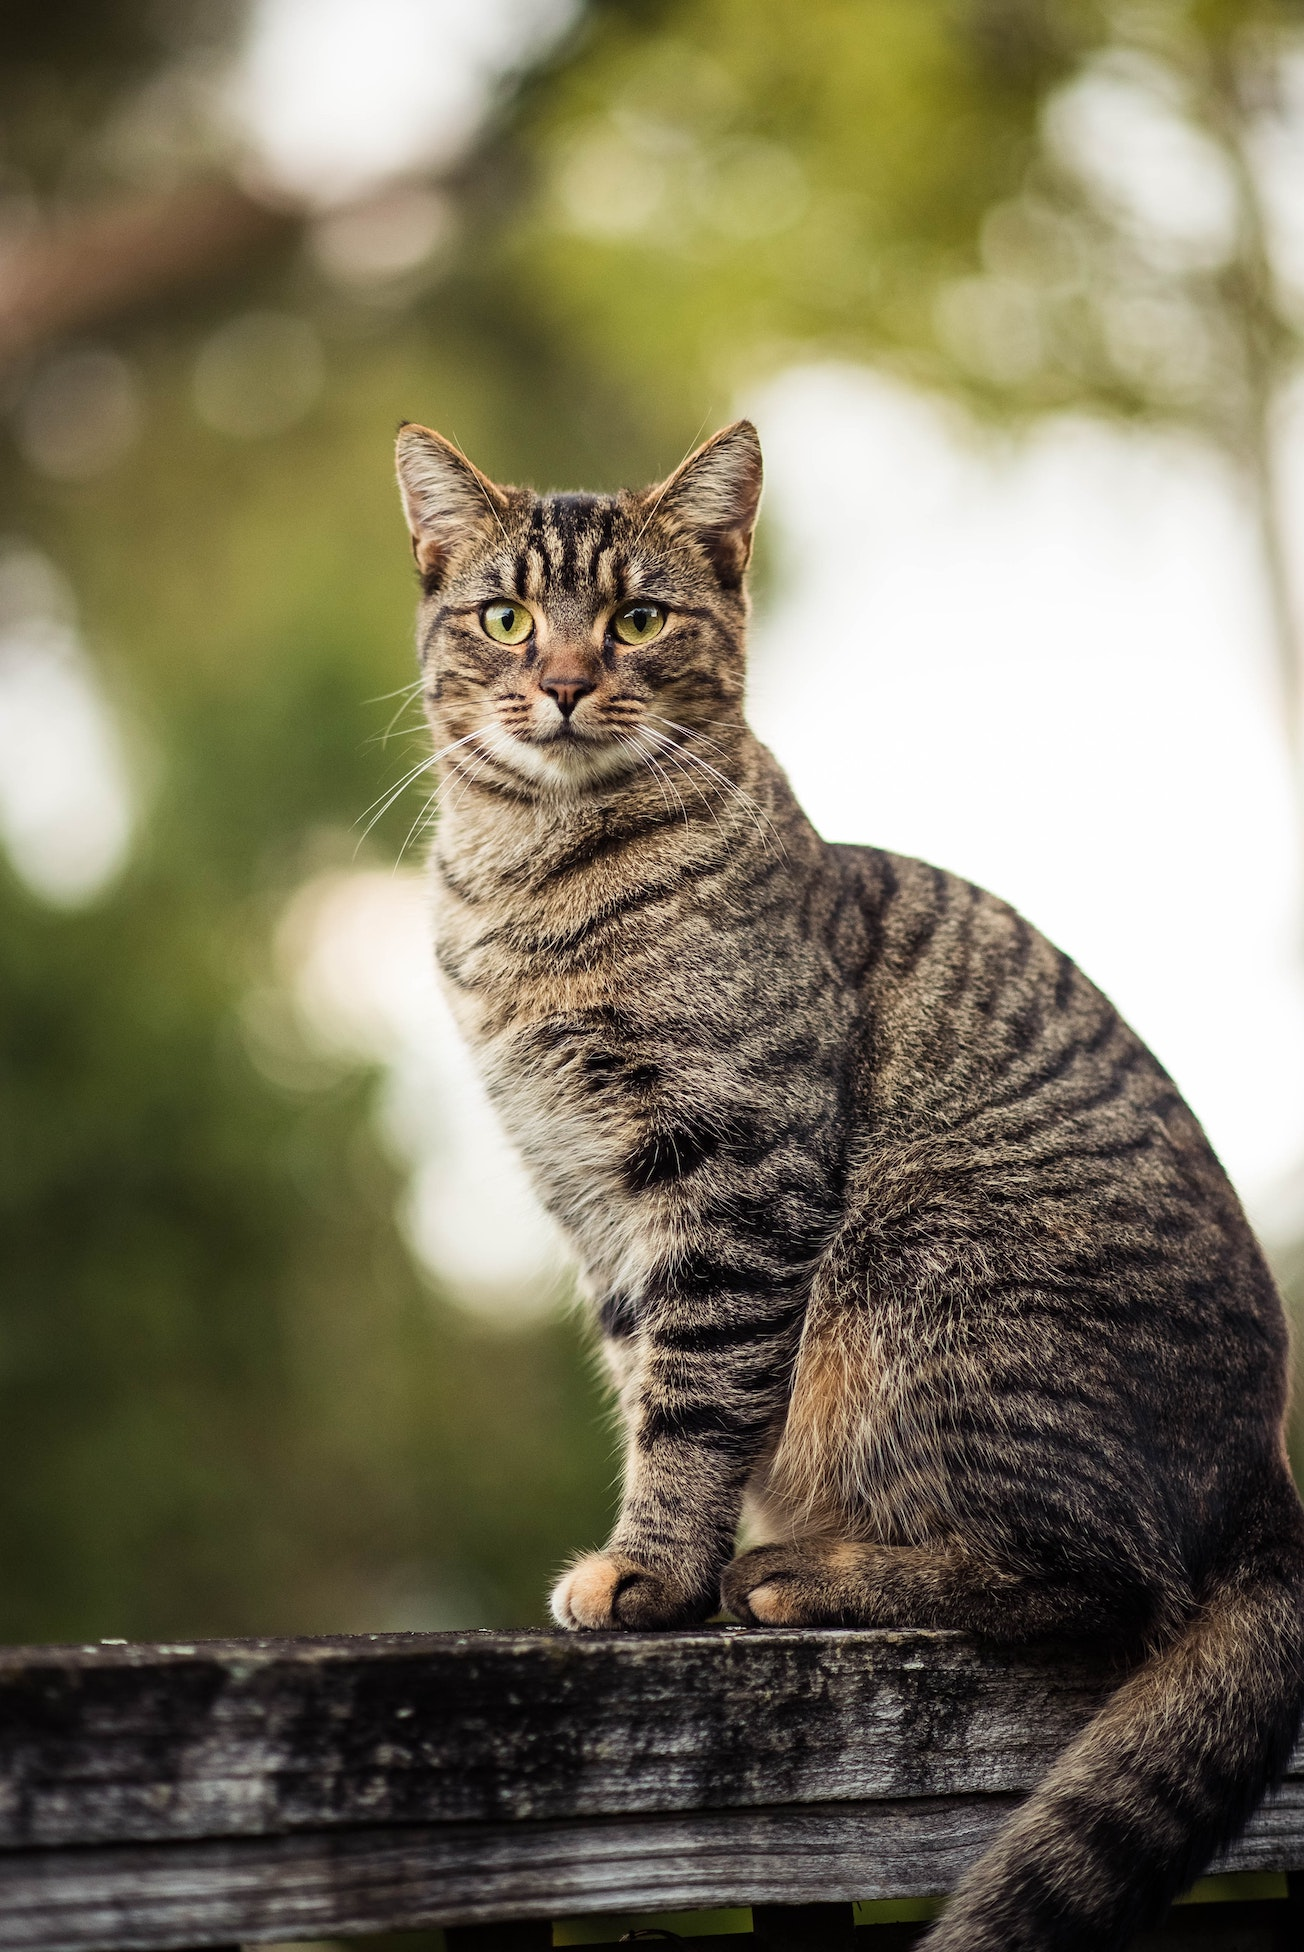 Alley Cat Allies states caregivers can continue to feed feral cat colonies during shelter in place restrictions